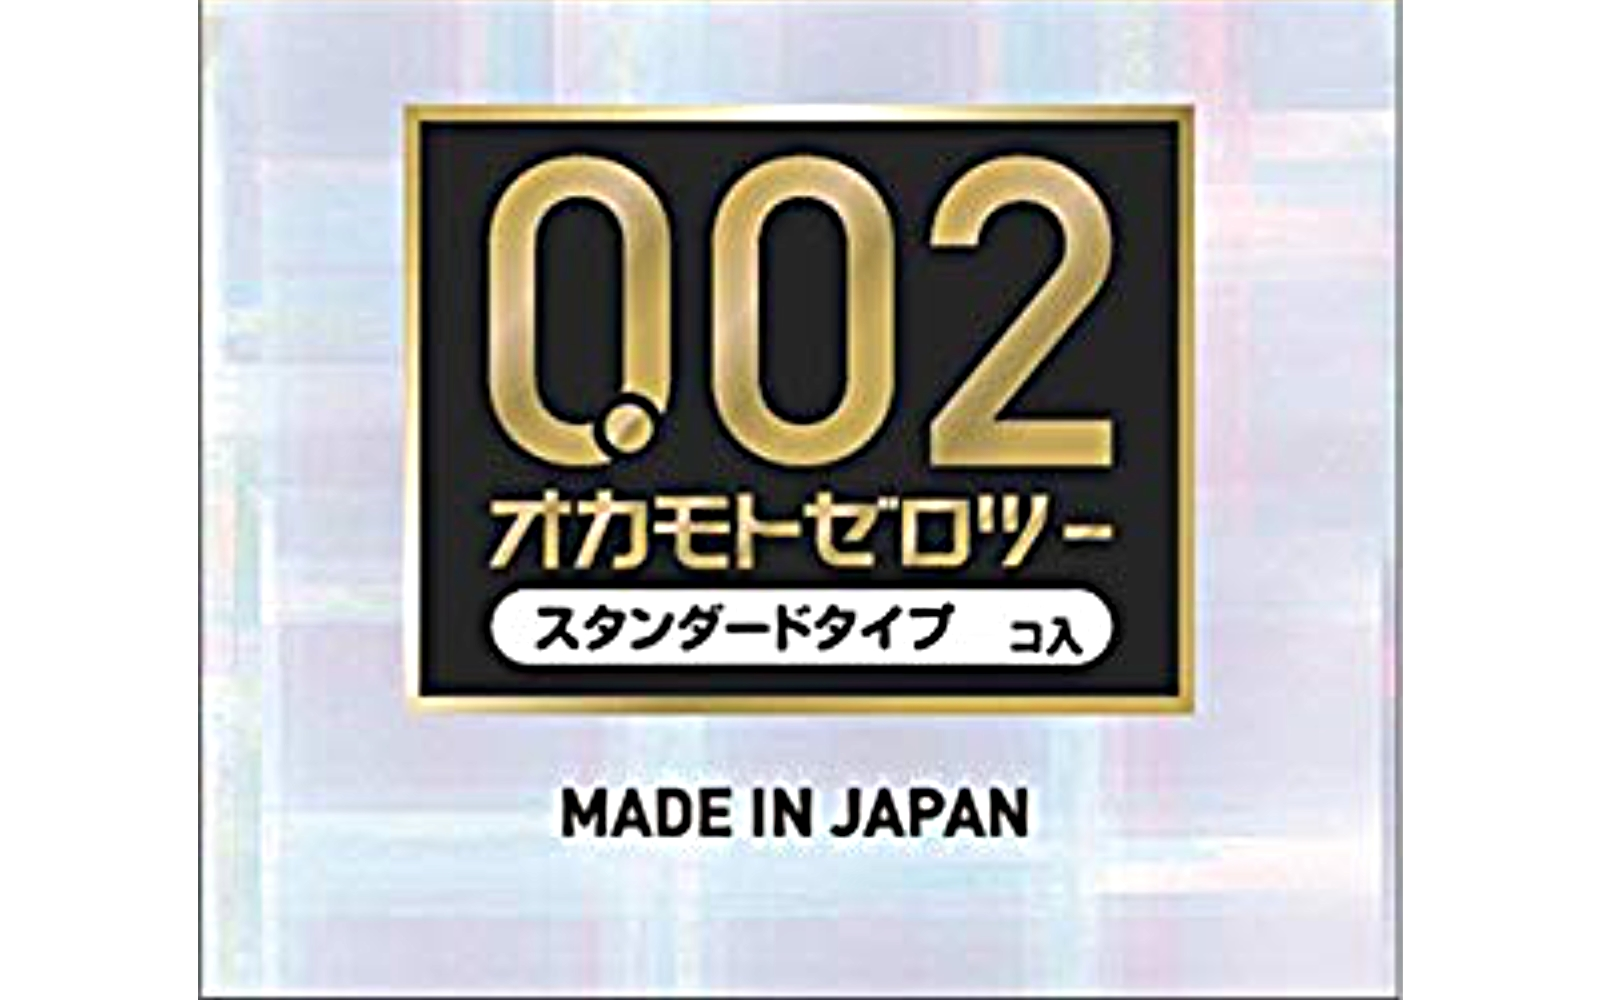 Okamoto 0.02 Standard Choosing The Best Japanese Condom Brand For You Both